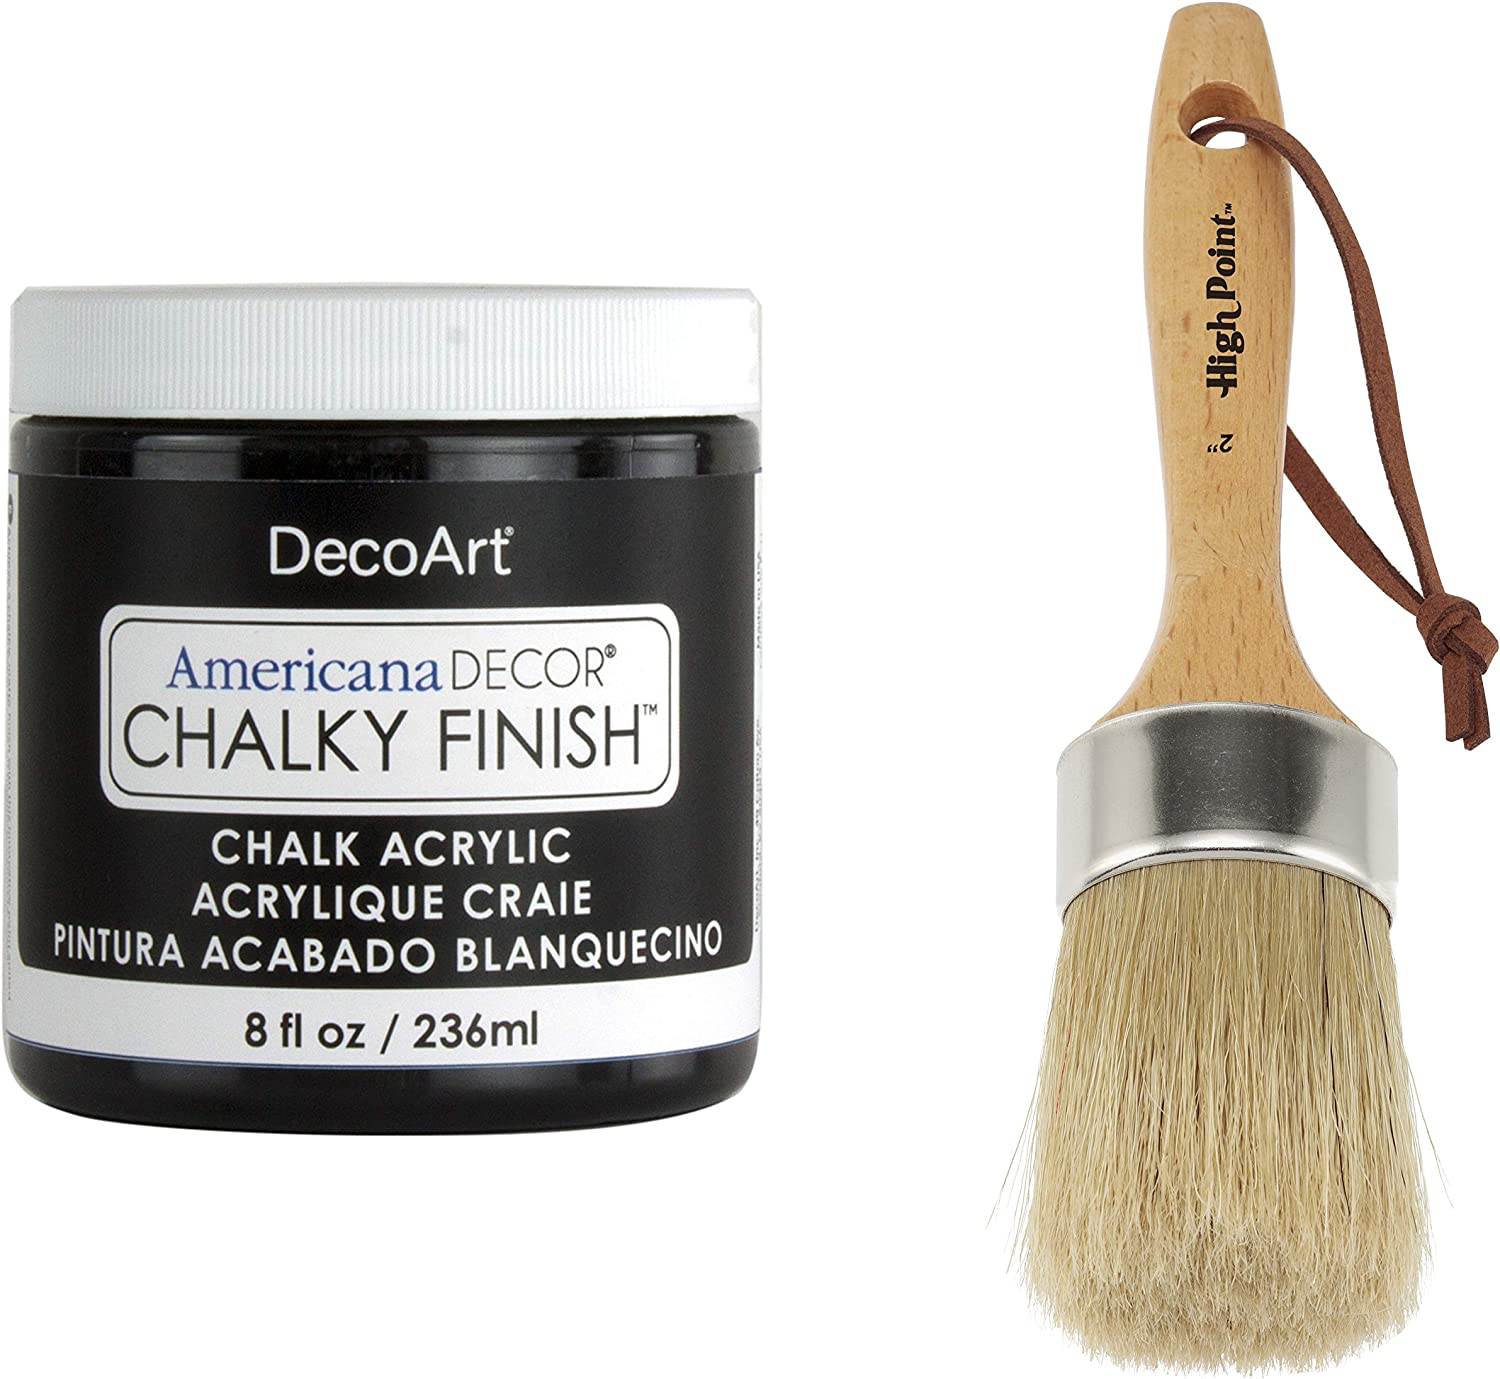 "DecoArt Americana Décor Chalky Flat Finish Paint and 2"" Chalk Wax Finishing Paint Brush Set - 8oz - Carbon"